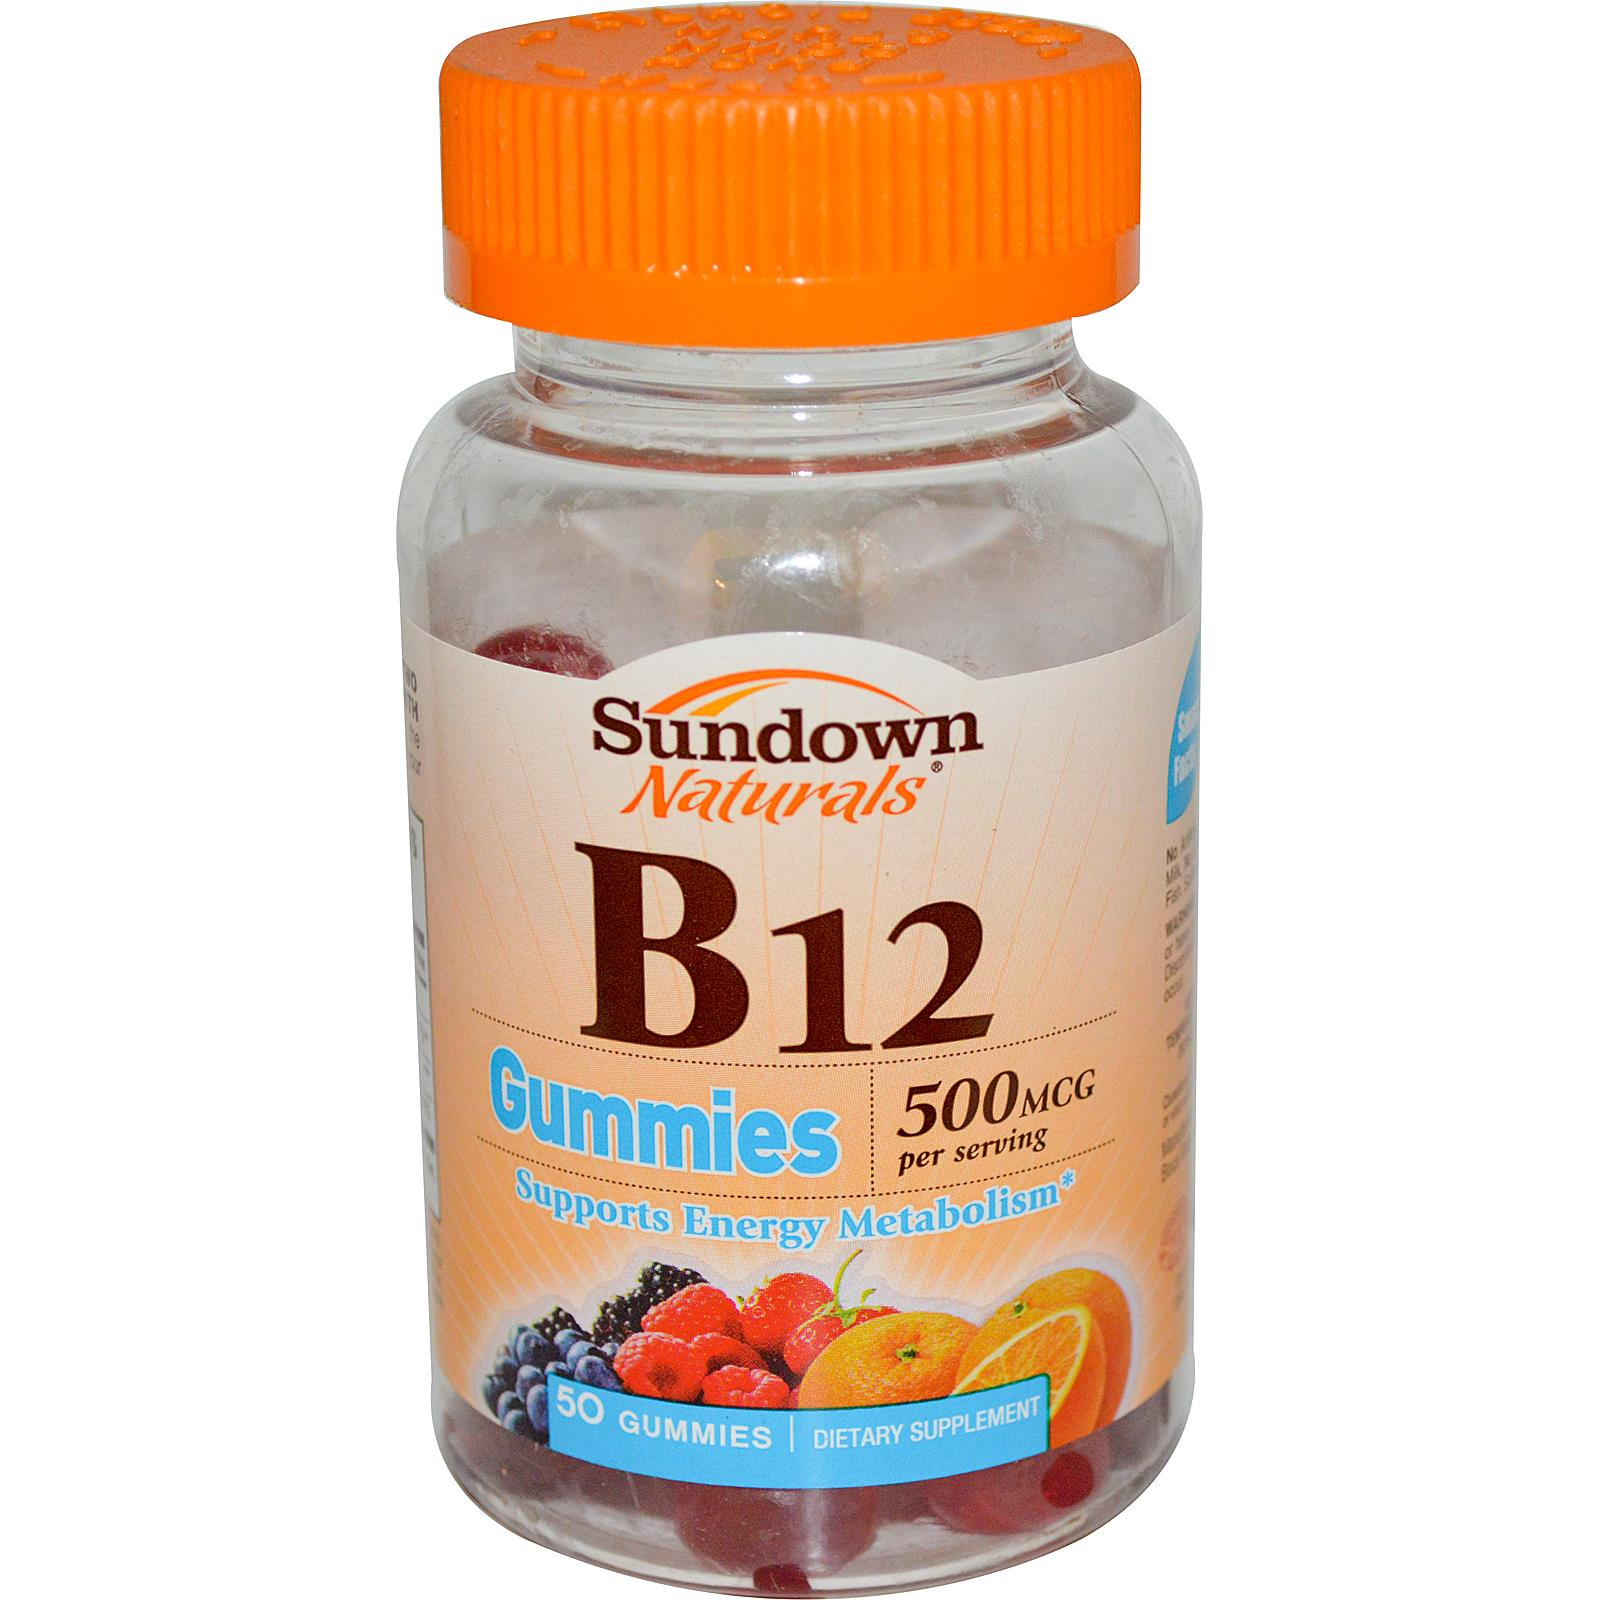 Sundown Naturals Vitamins Sundownnaturalsgummies